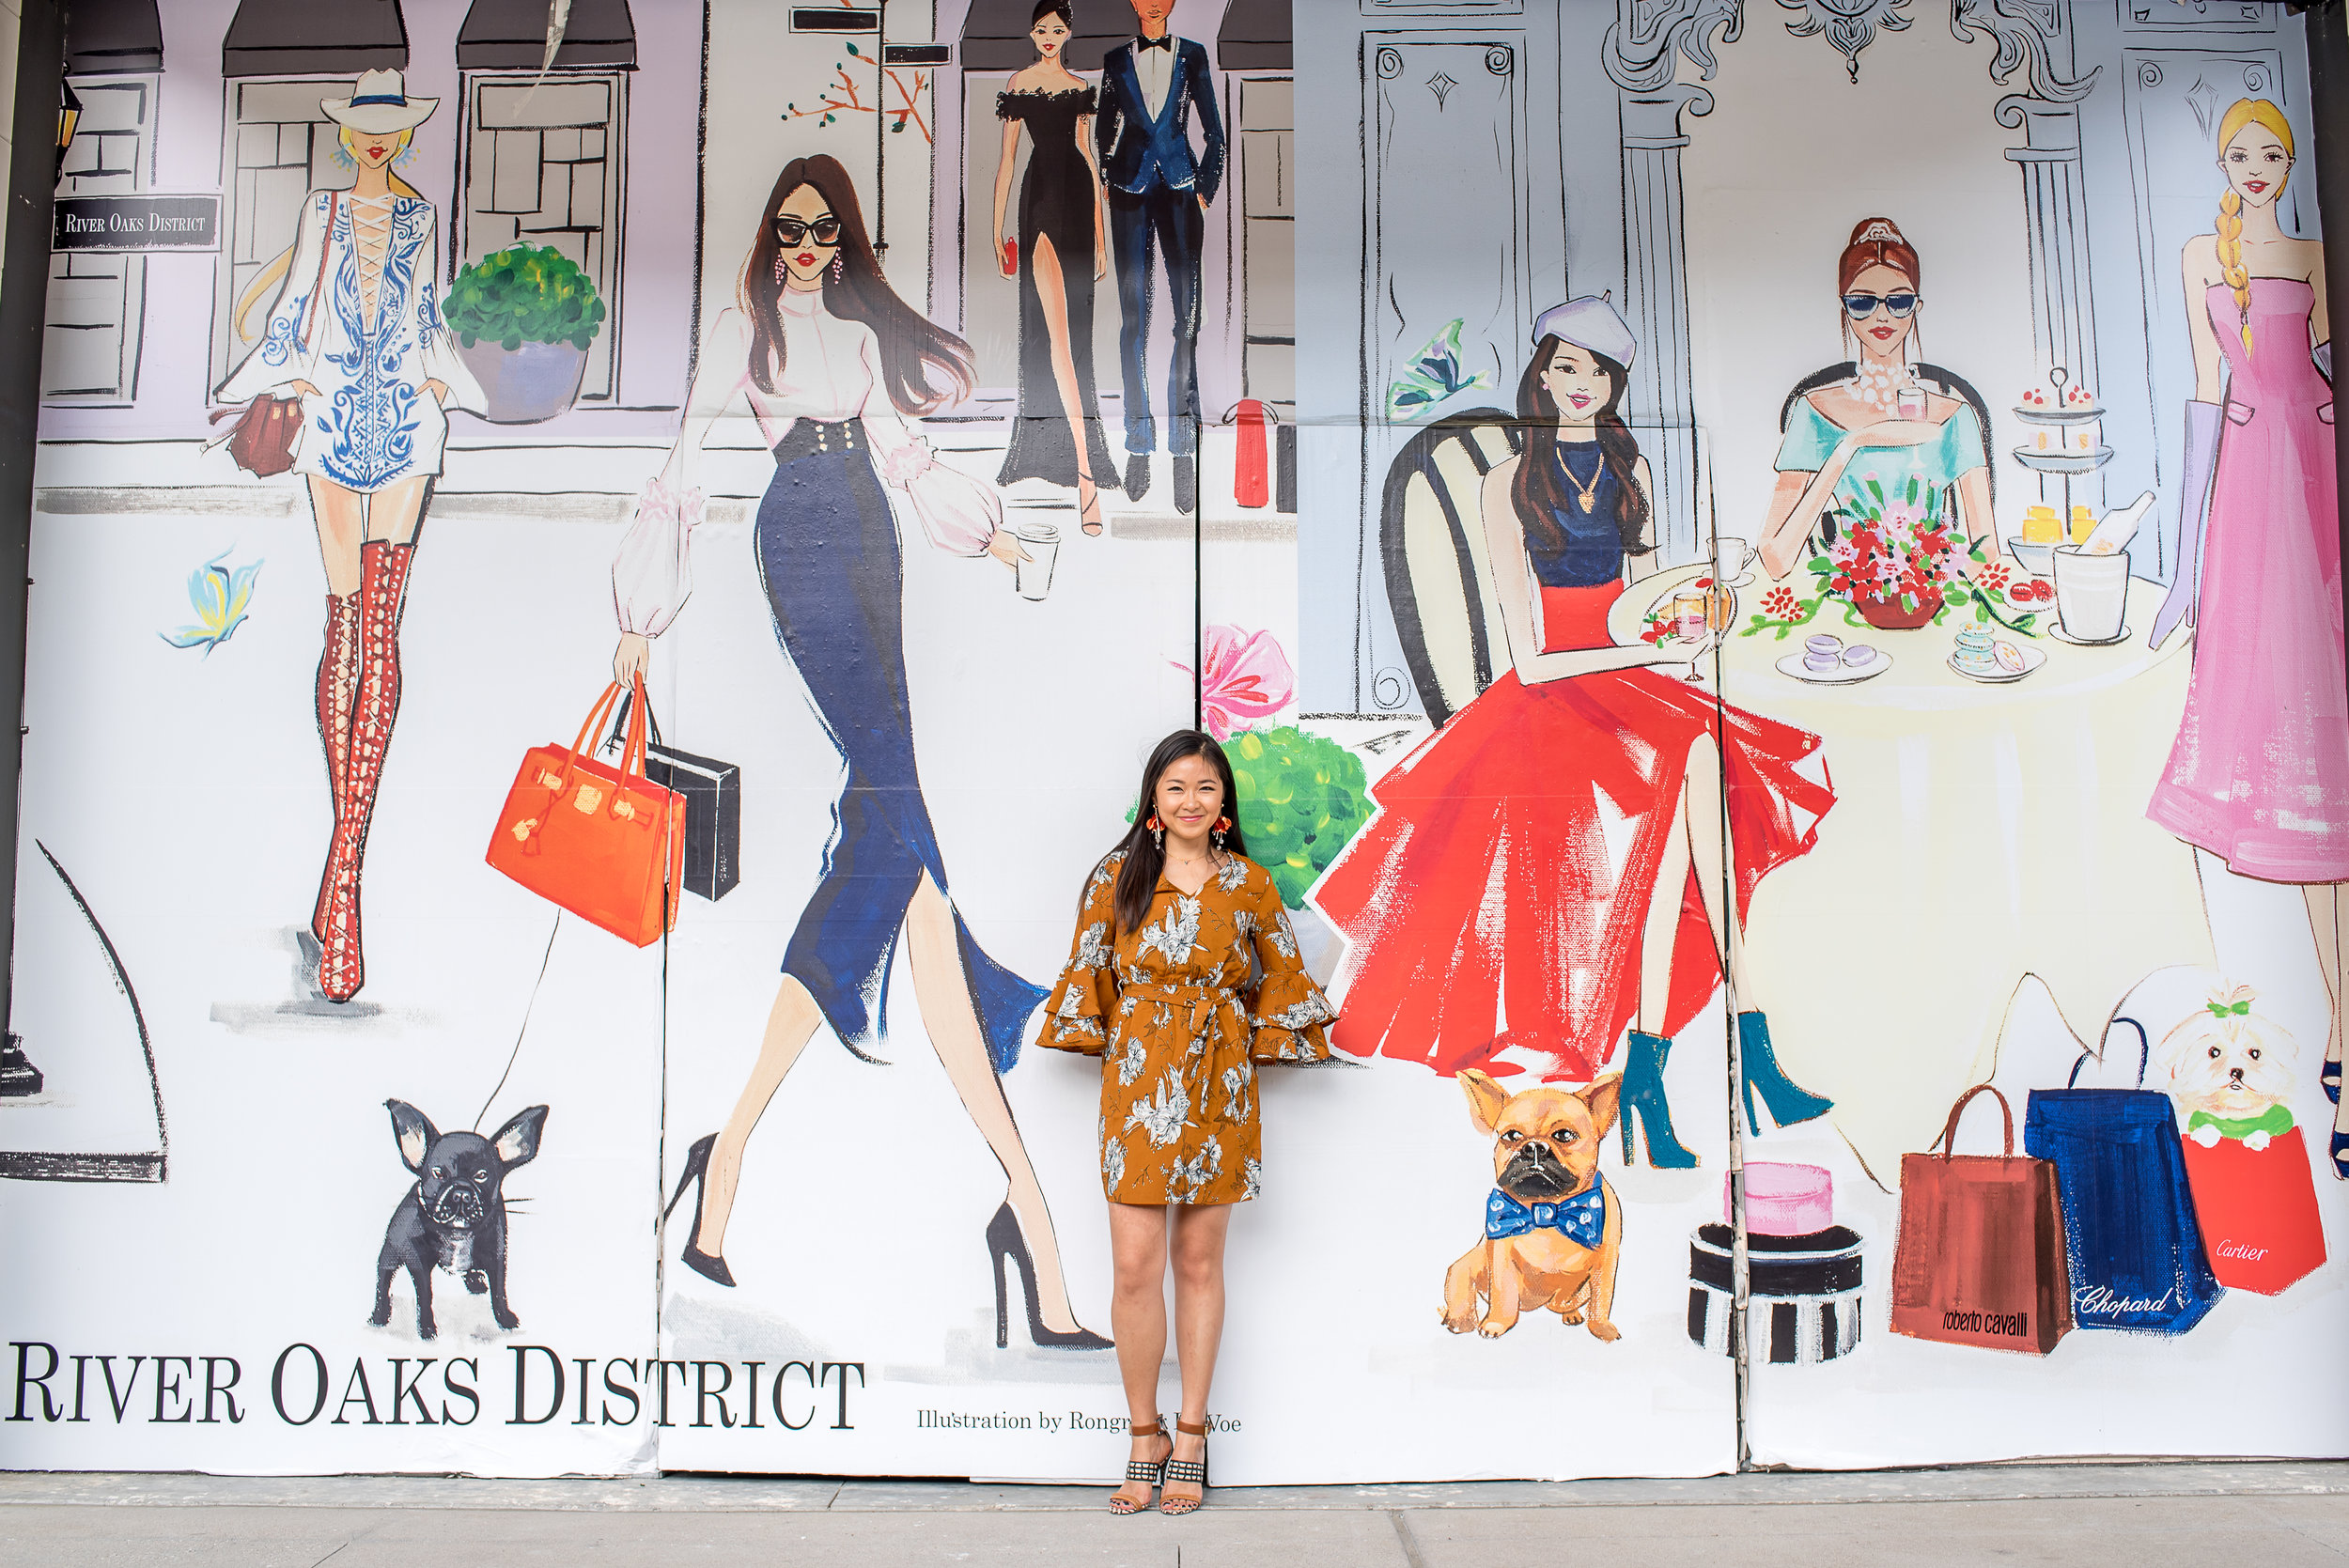 Fashion Illustration Mural at River Oak District by Rongrong DeVoe.jpg